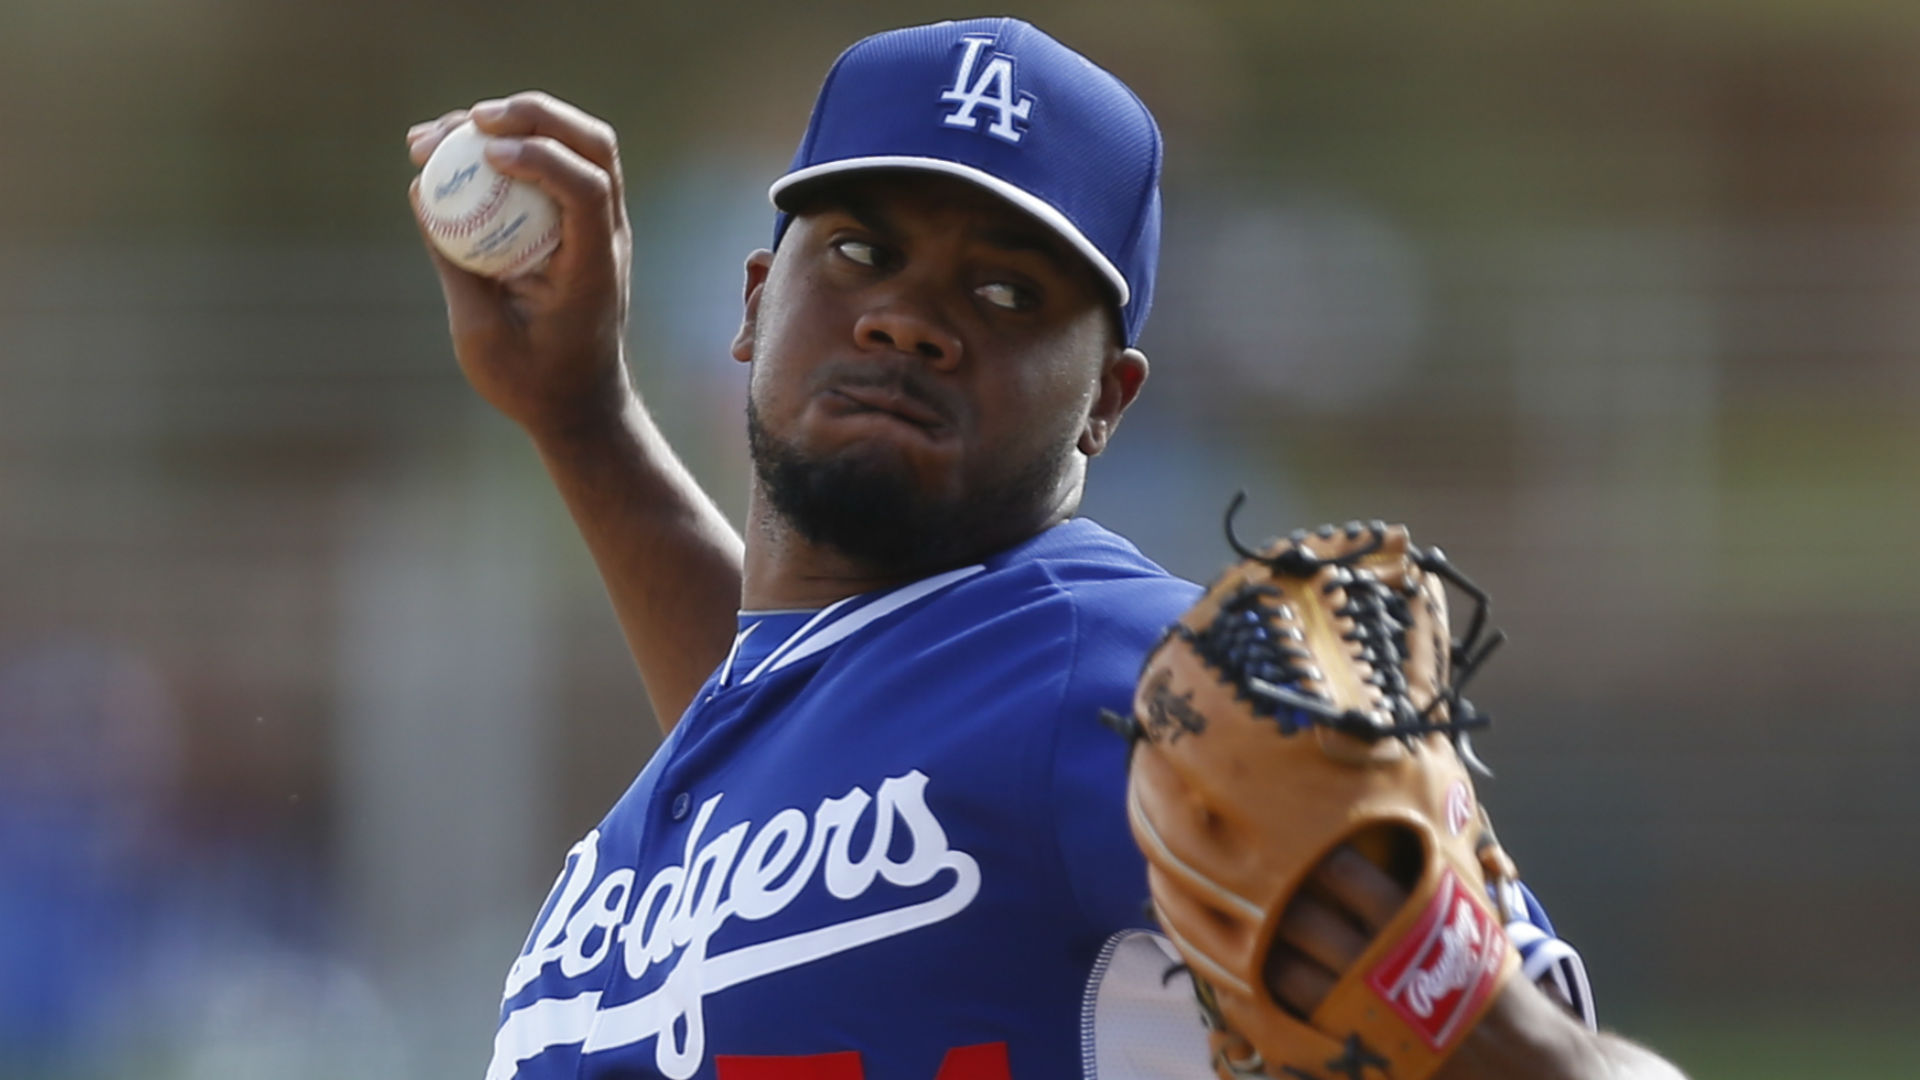 Fantasy baseball mock draft: No relief at closer